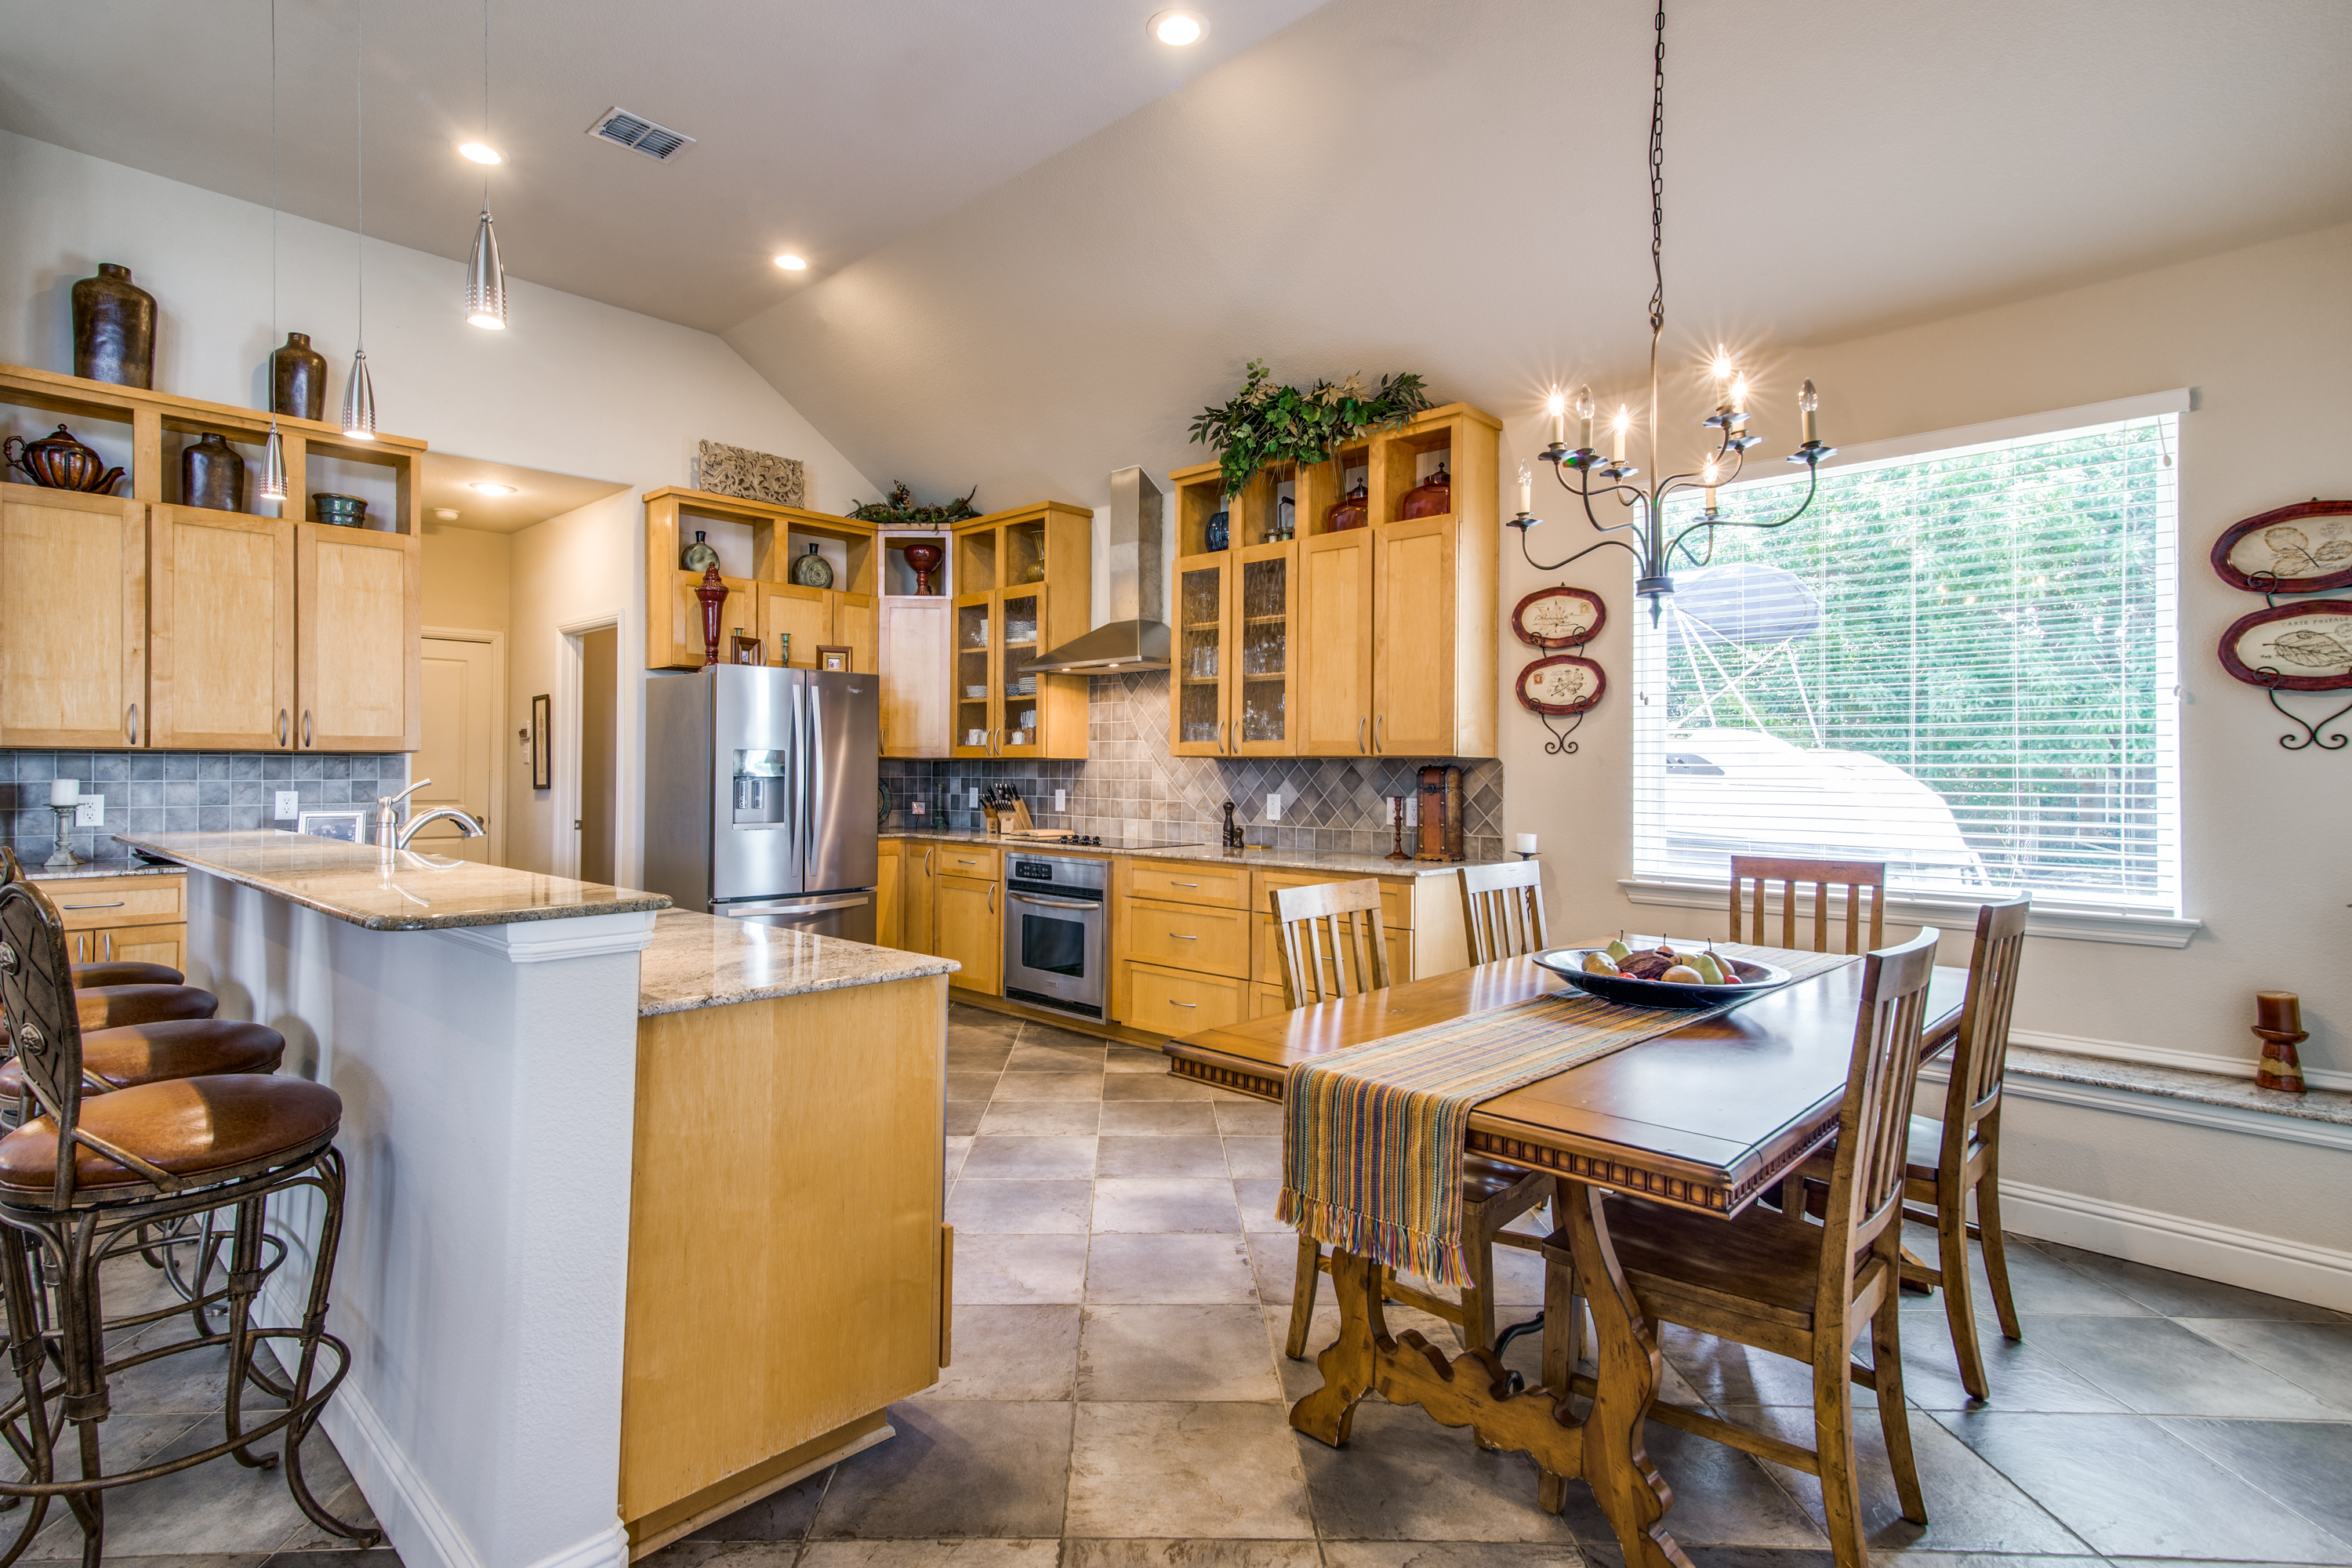 The kitchen is designed with a large breakfast bar & casual dining.